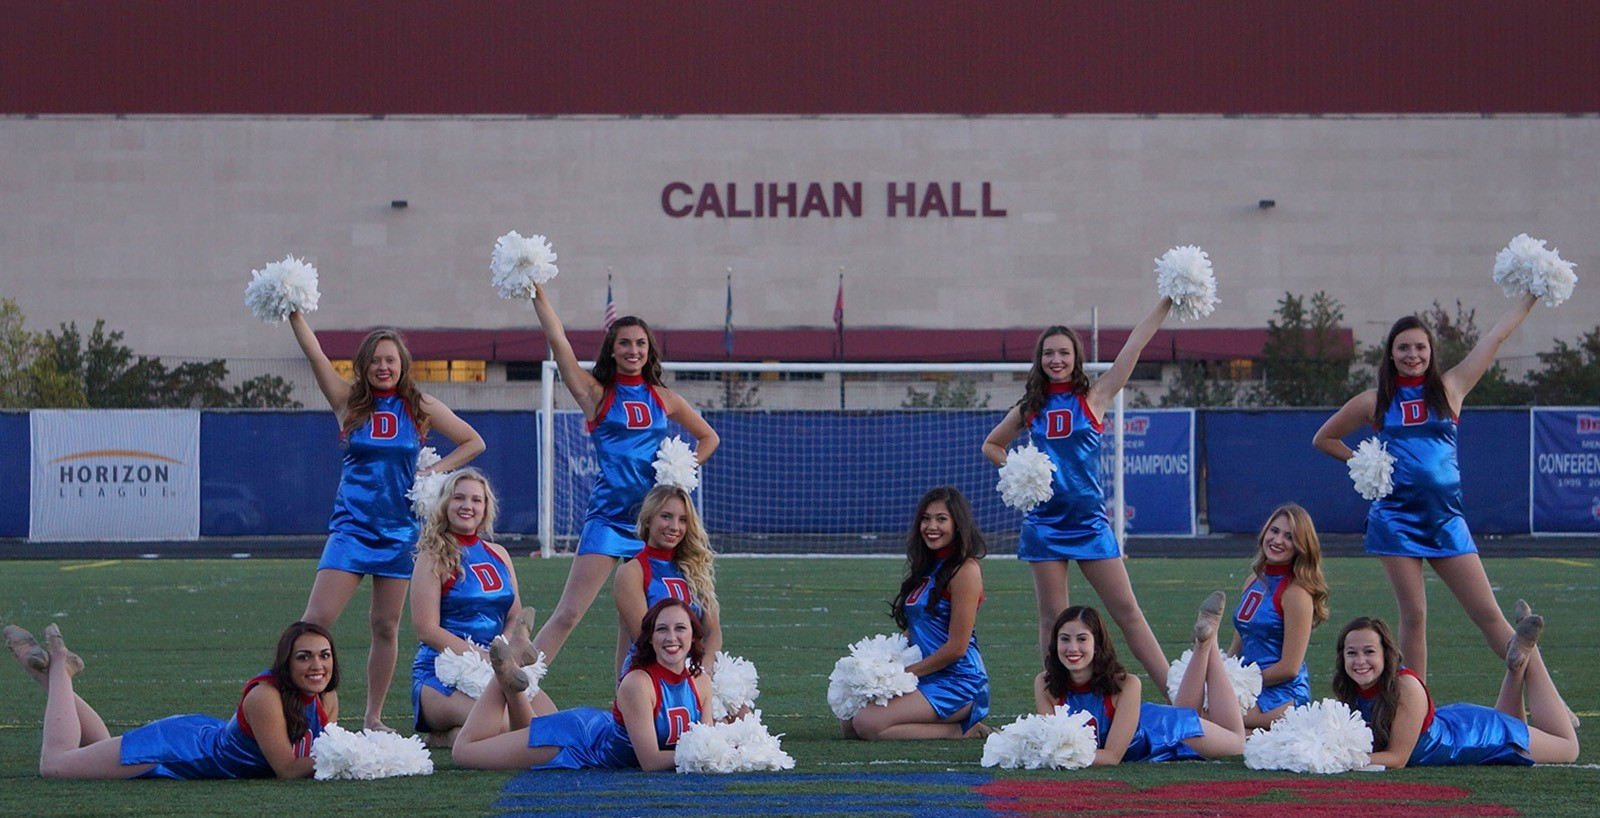 Mackenzie, center right, was on the Dance Team at Detroit Mercy.